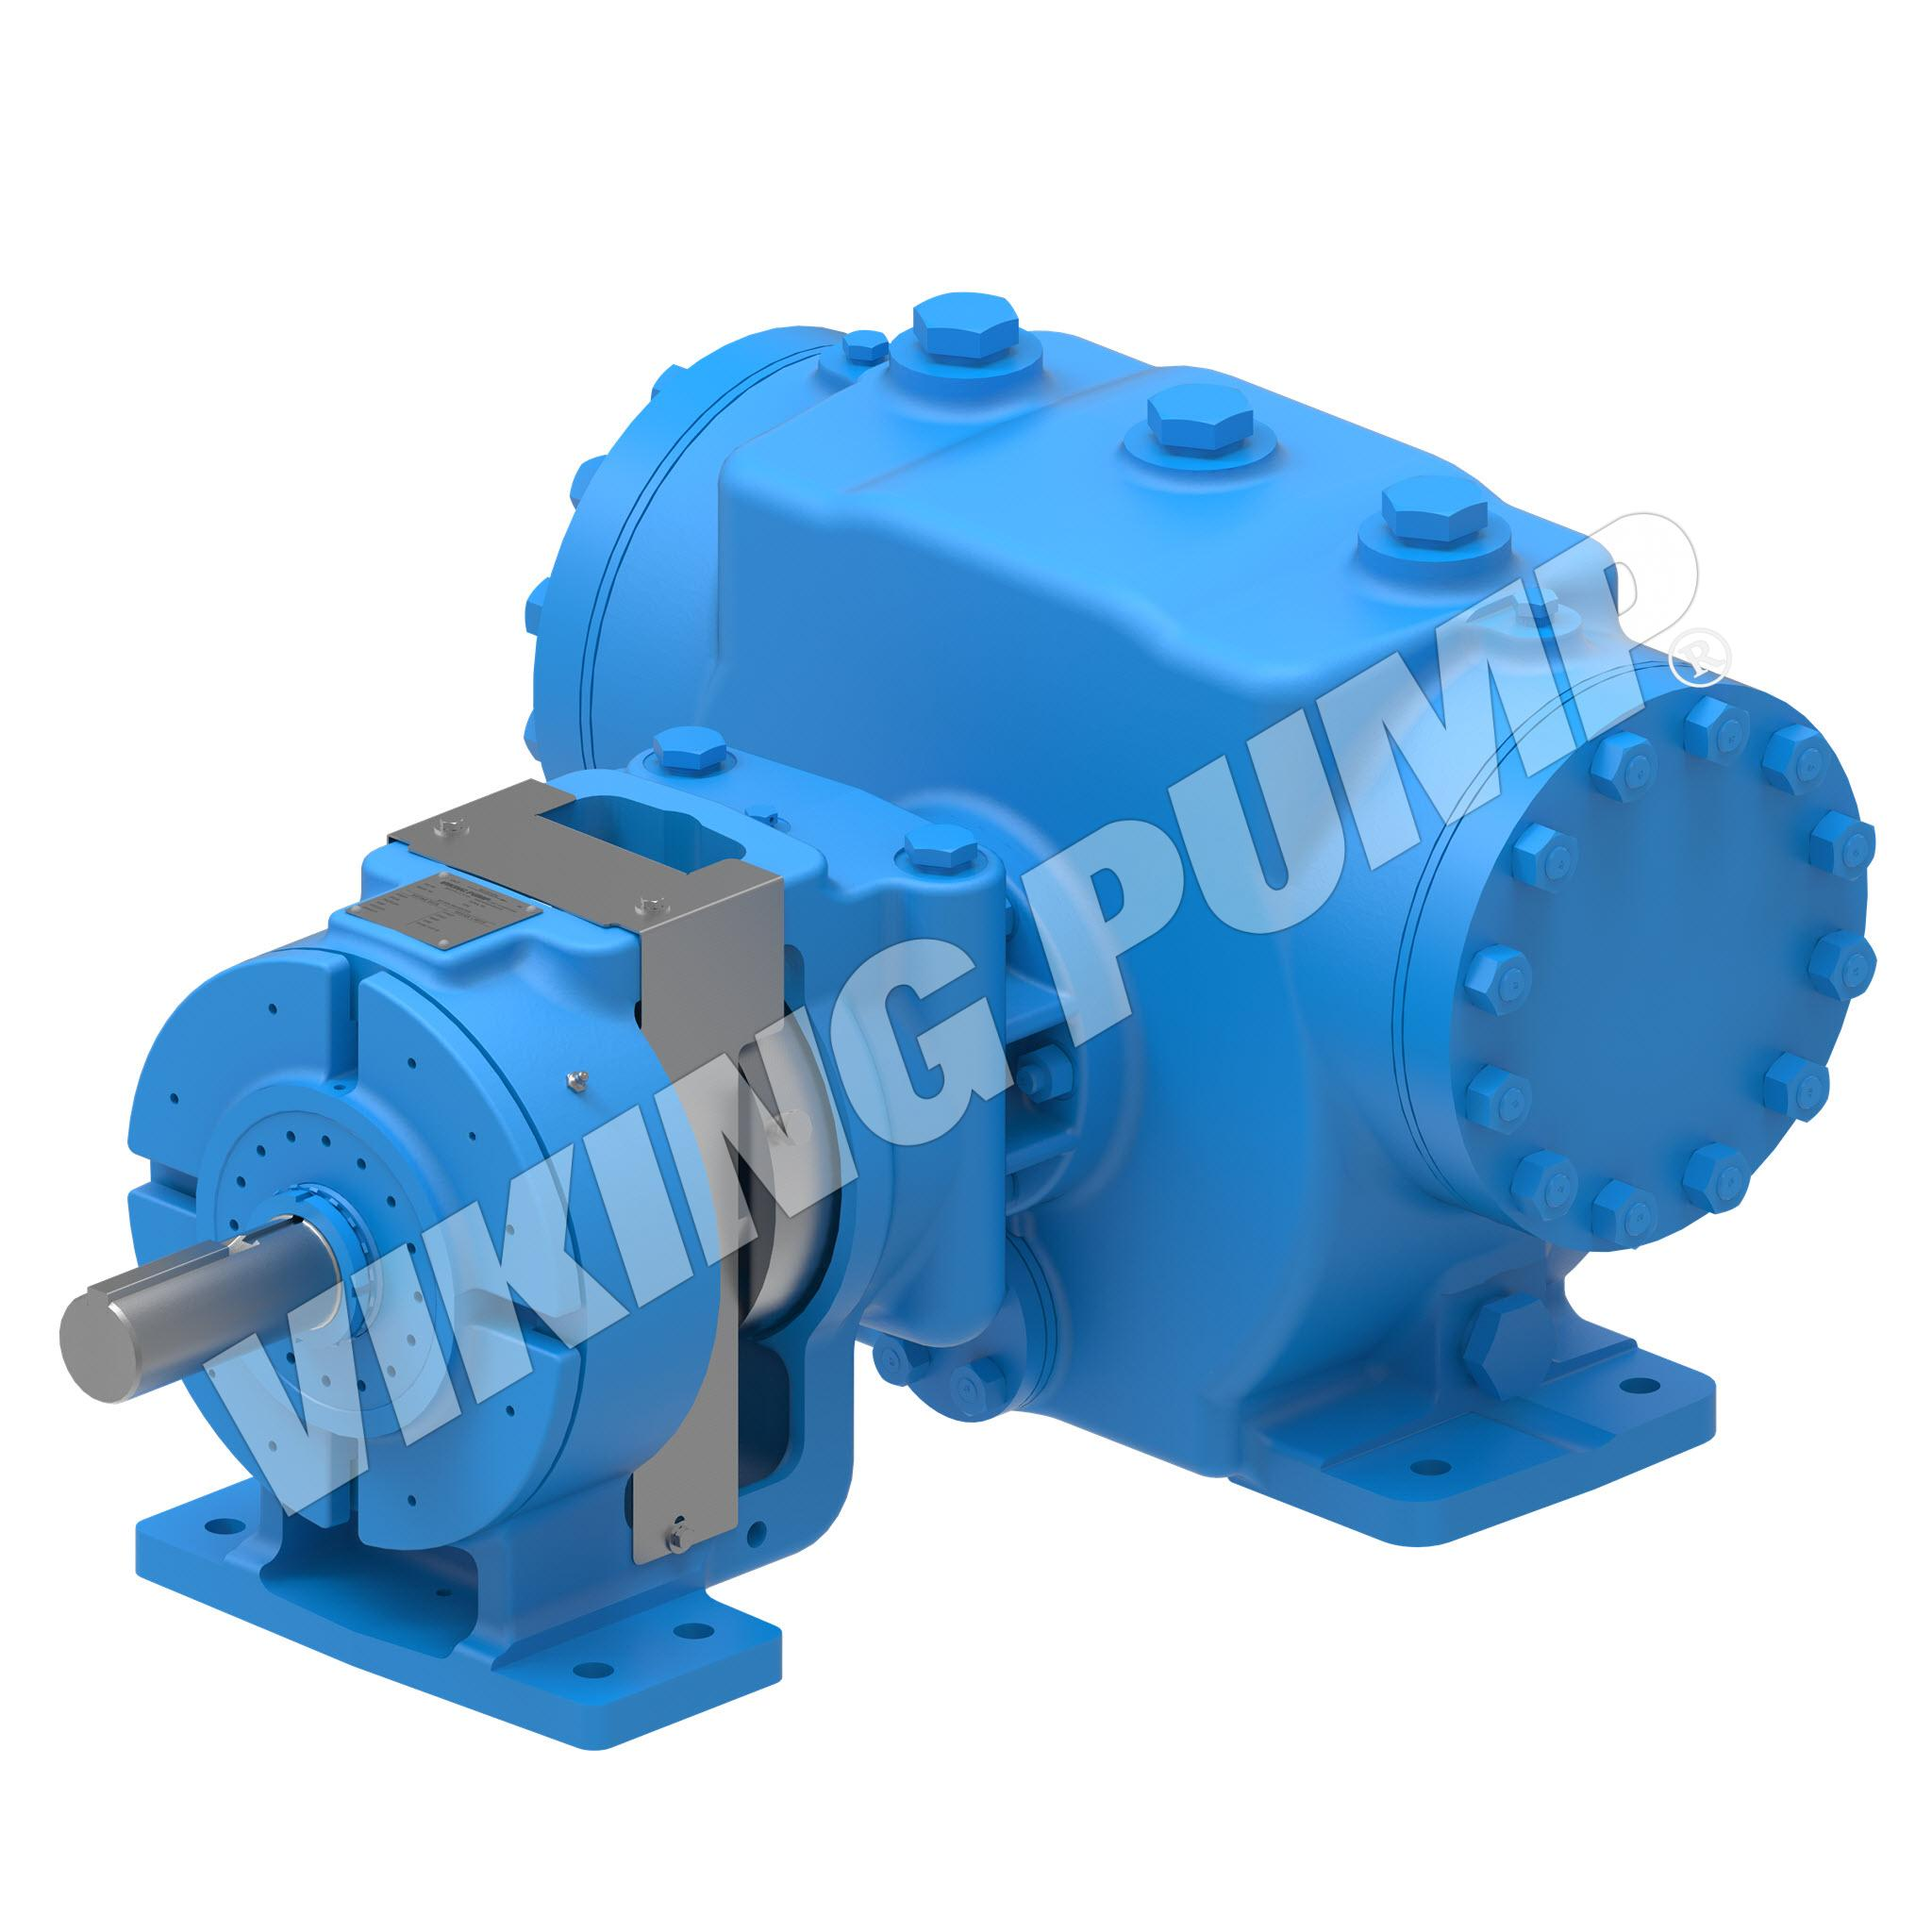 Model N4323AX, Foot-Mounted, API 682 Seal, API 676-Compliant Pump